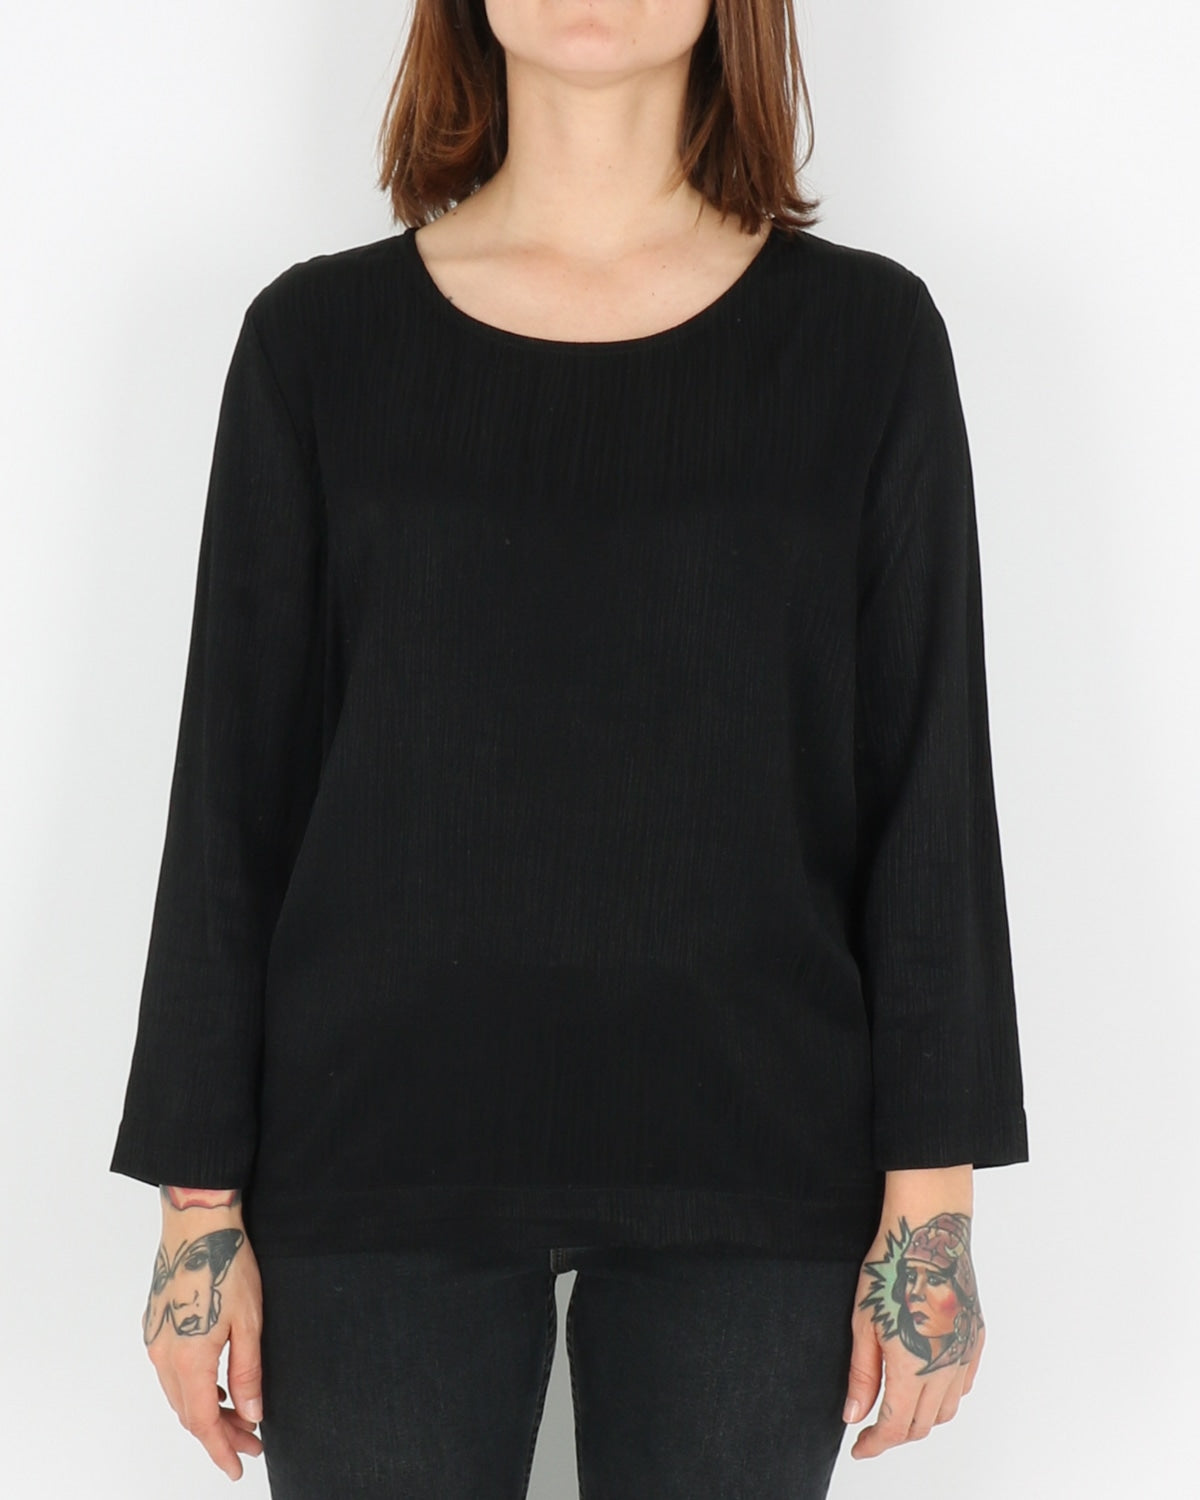 basic apparel_keira top_black_1_3